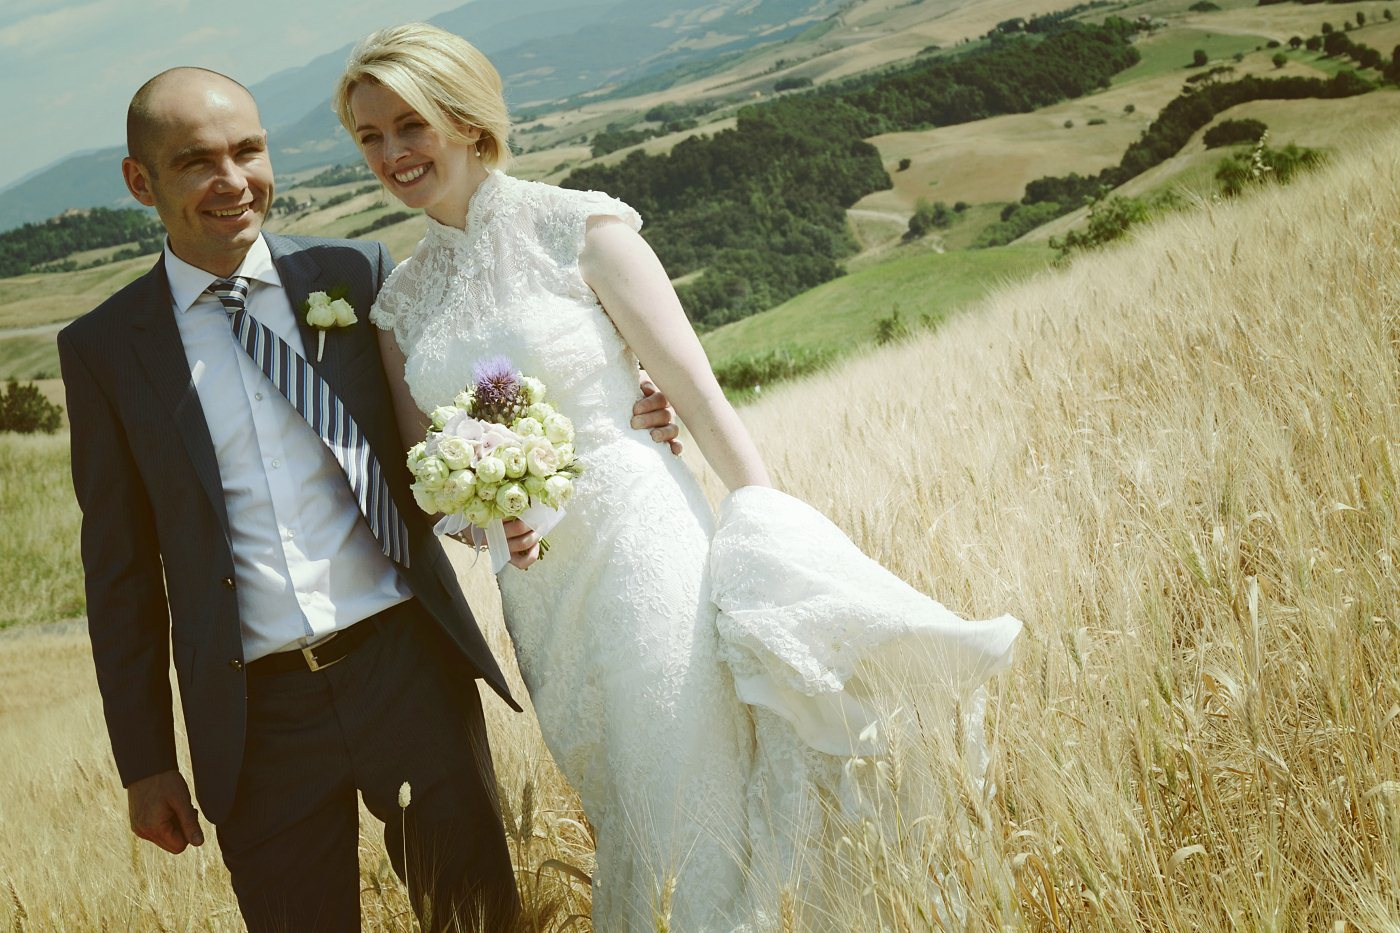 Wedding Photographer Volterra